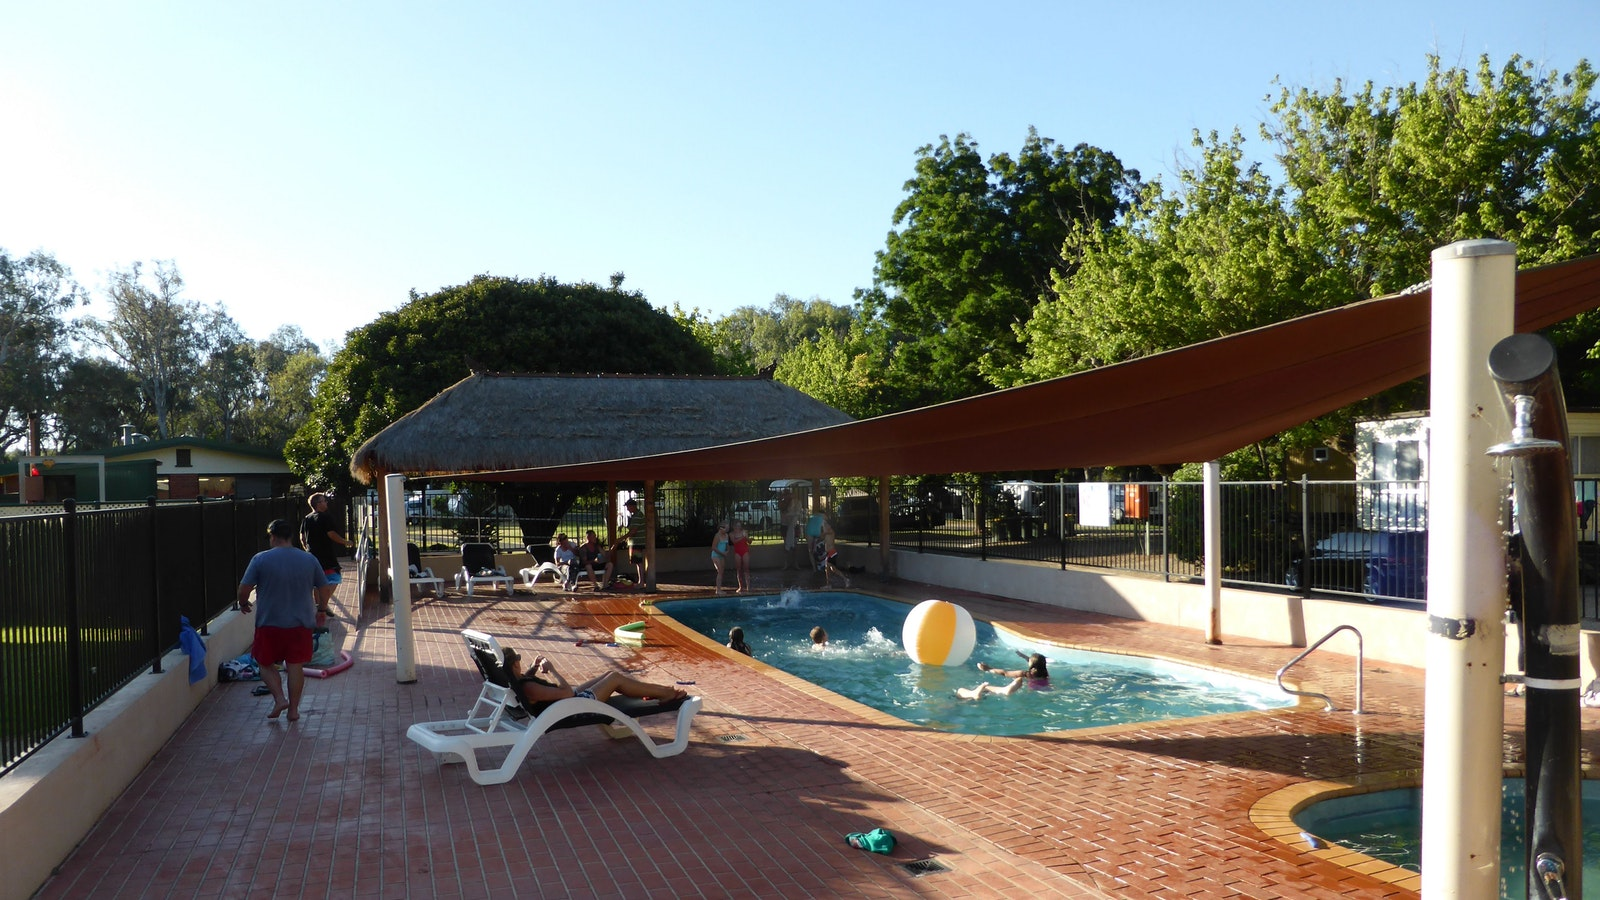 Large pool area including wading pool